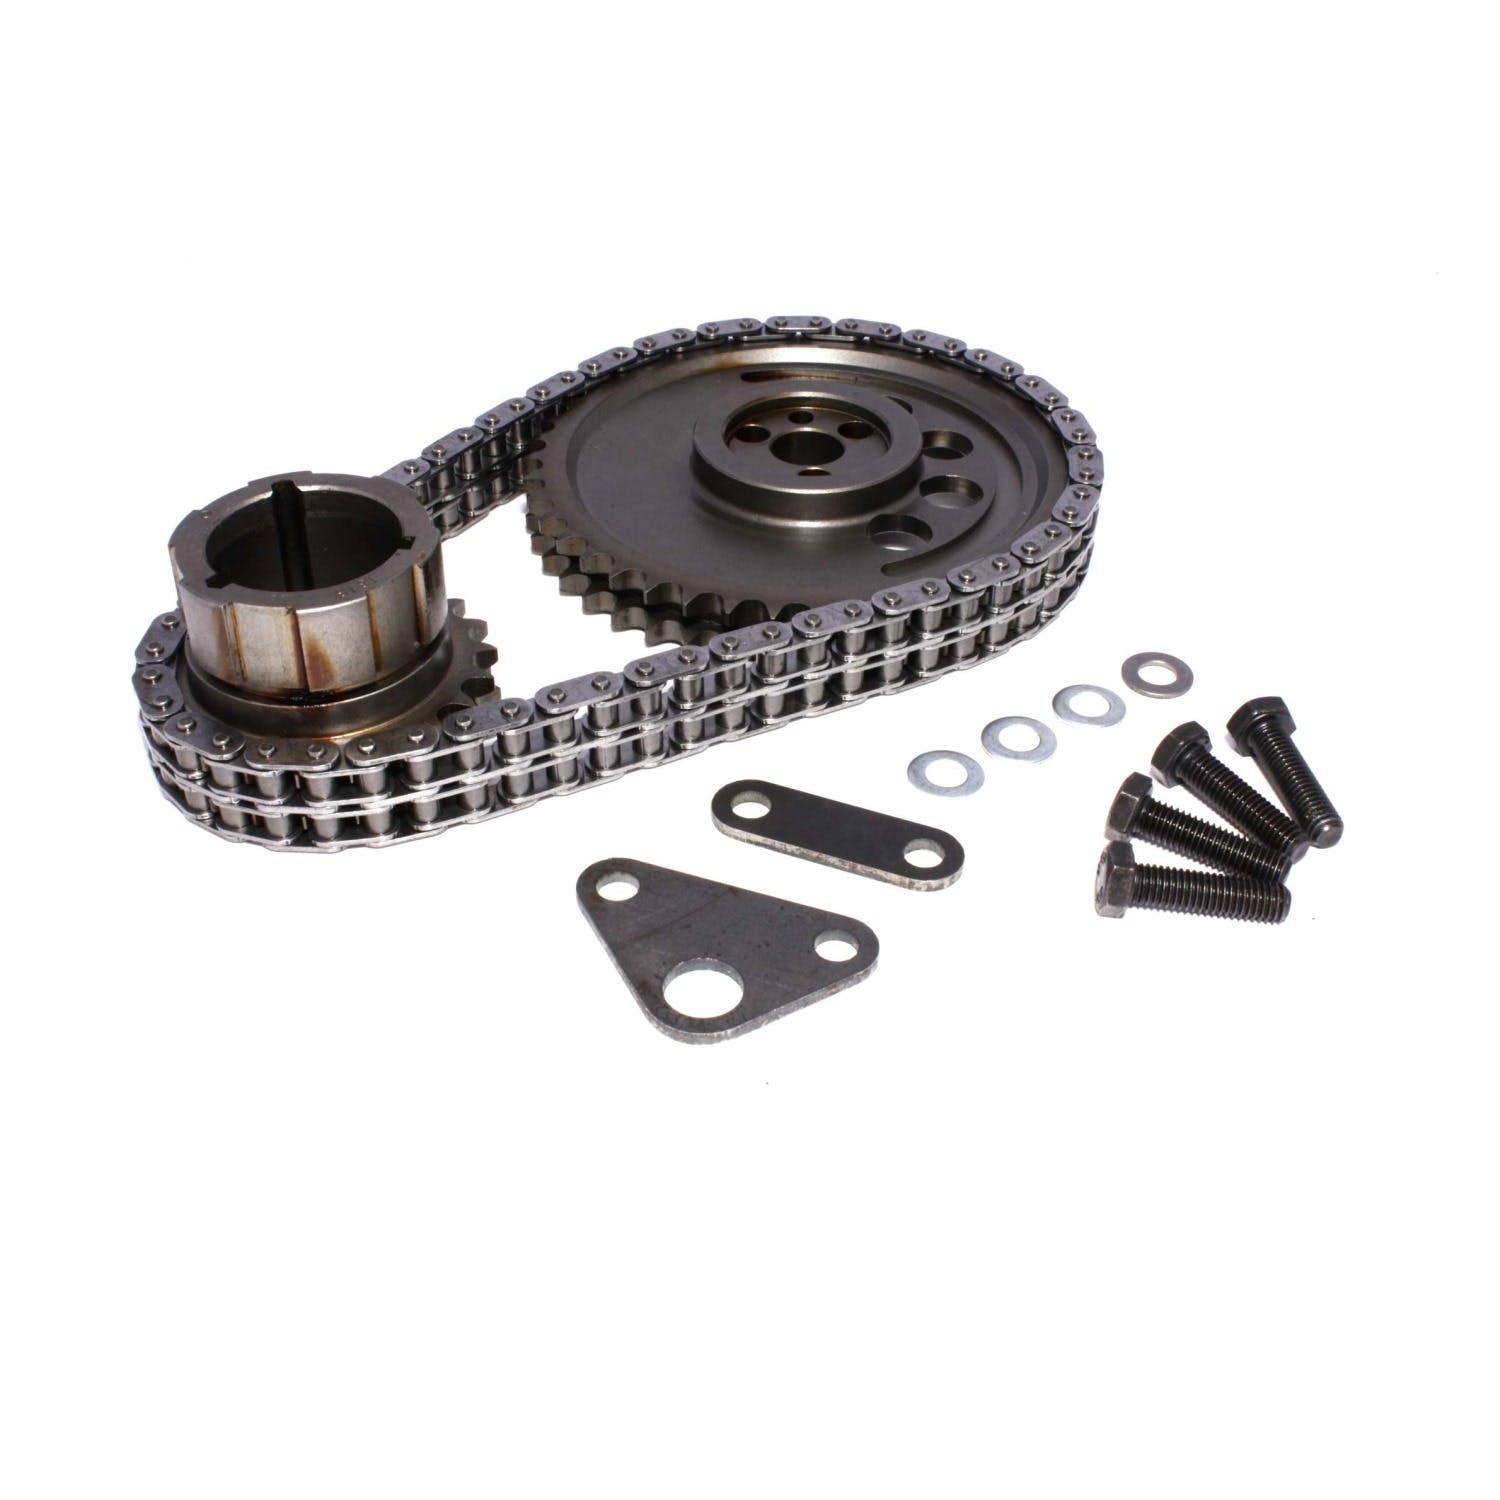 COMP Cams 3131 Hi-Tech Race Roller Timing Set for Small Block Ford